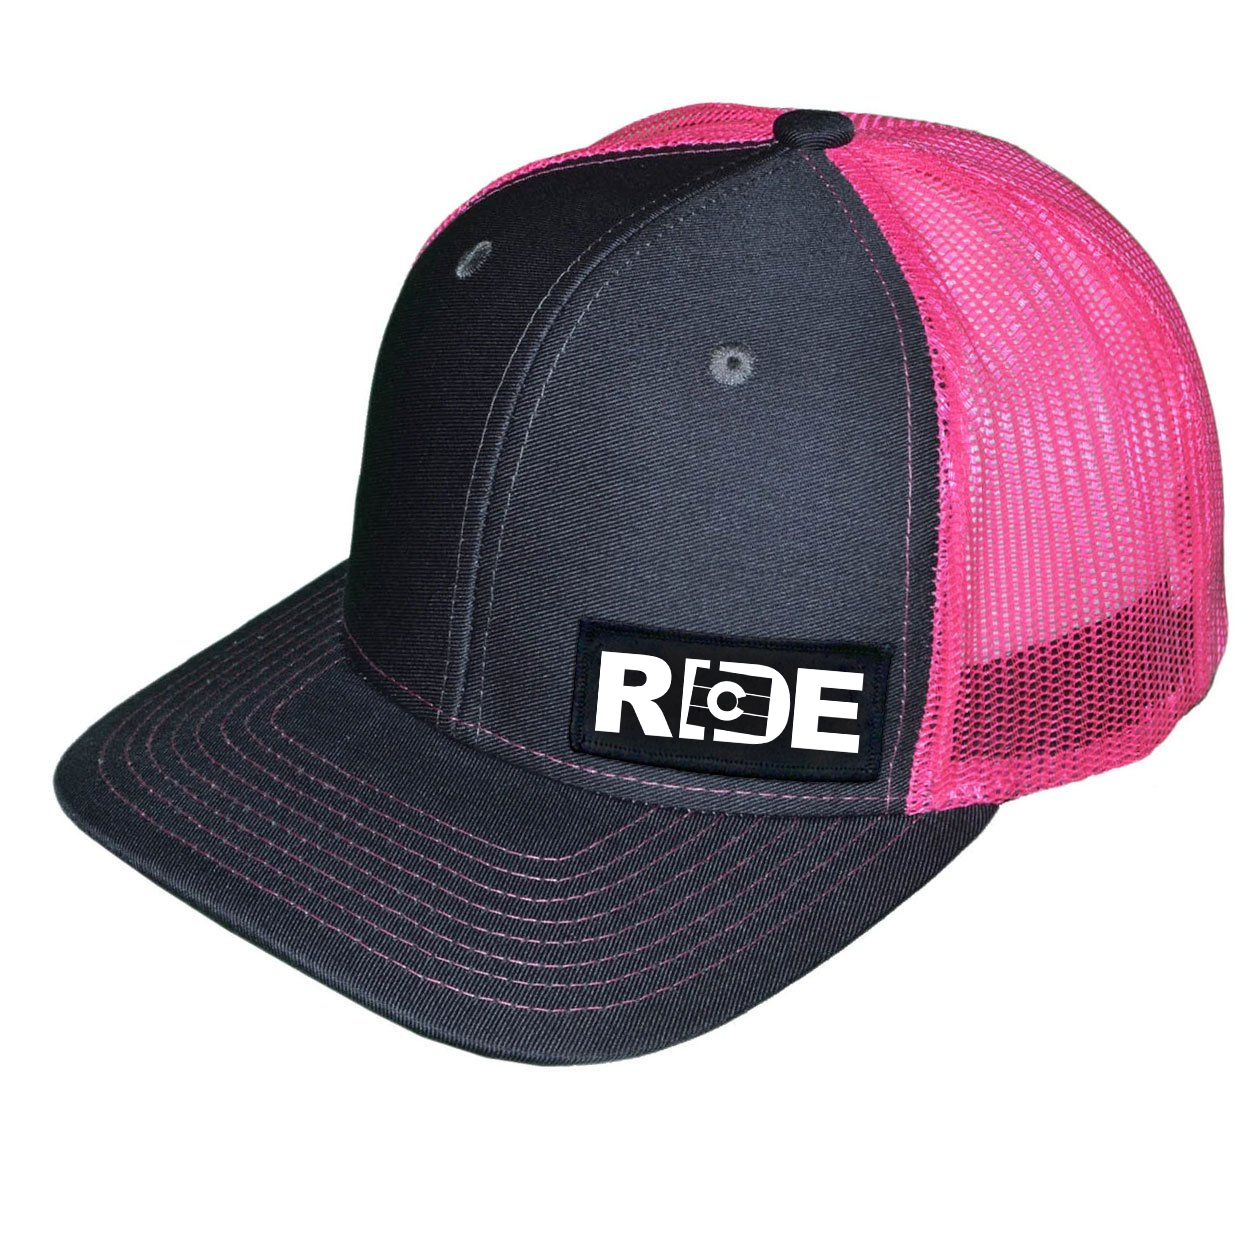 Ride Colorado Night Out Woven Patch Snapback Trucker Hat Dark Gray/Neon Pink (White Logo)